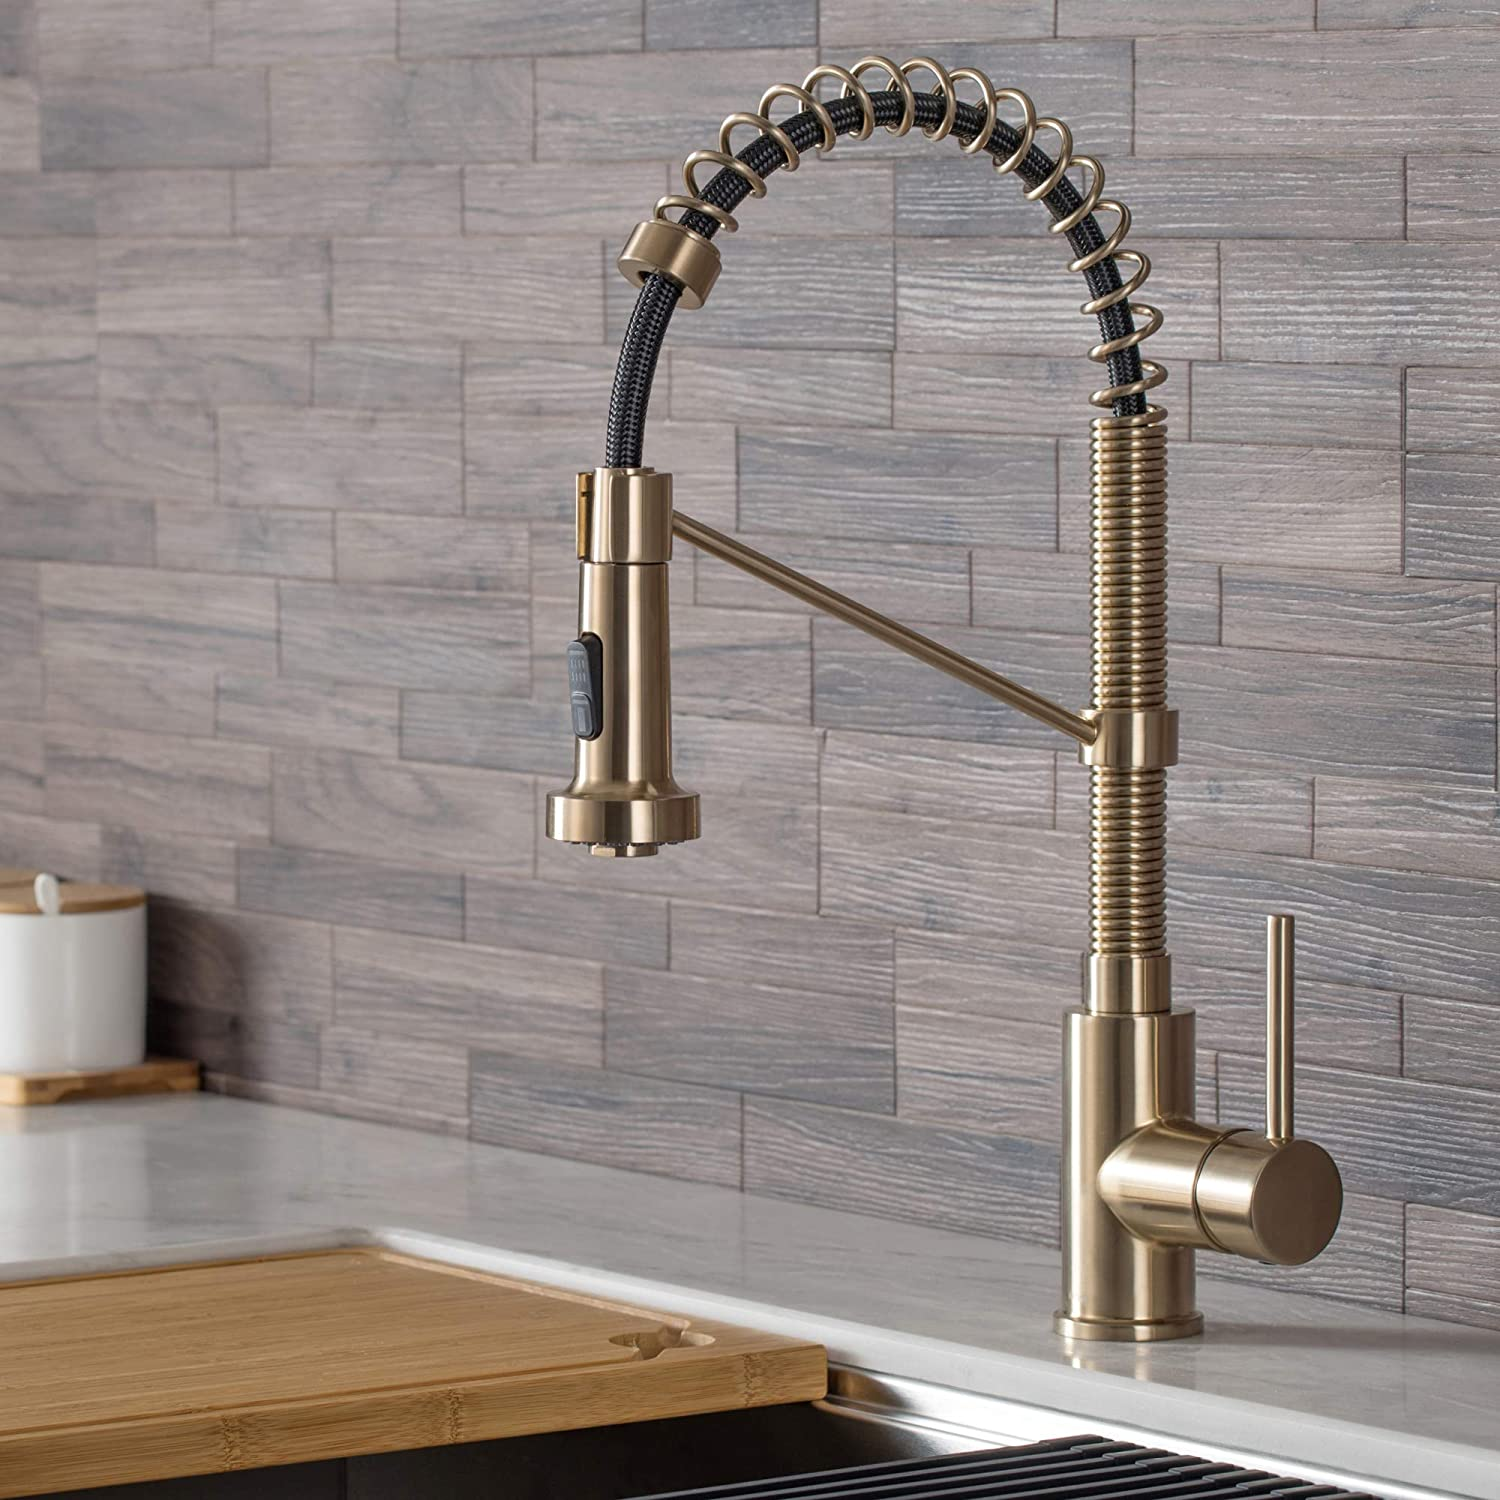 Kraus KPF-1610SFACB Bolden 18-Inch Single Handle Commercial Style Pull-Down Kitchen Faucet with Dual Function Sprayer, Spot Free Antique Champagne Bronze